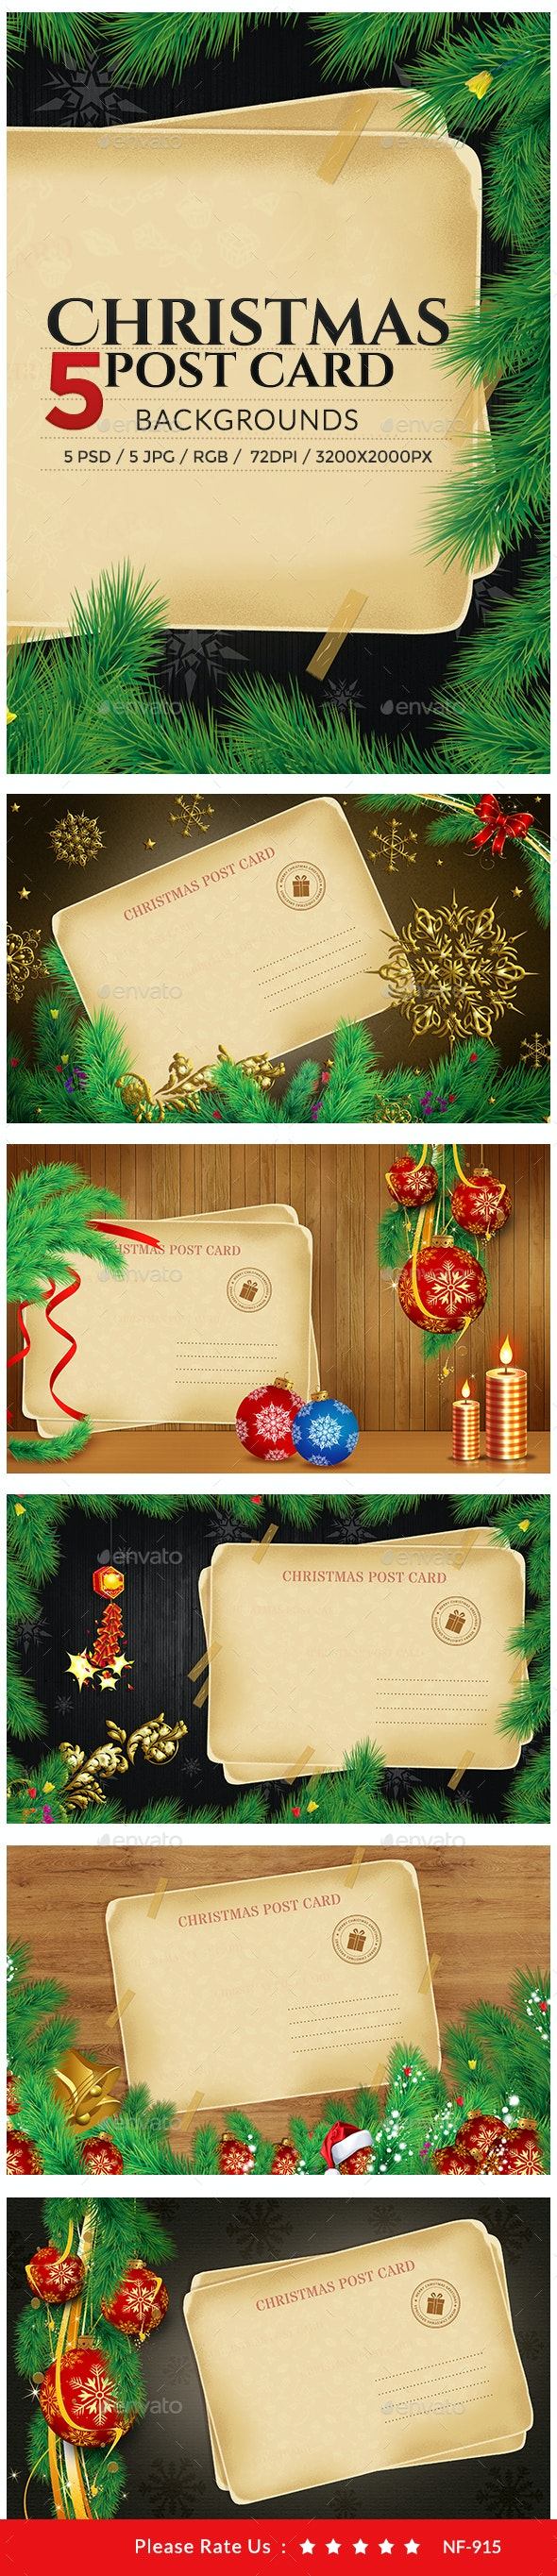 Christmas Postcard Backgrounds - 5 Designs - Backgrounds Graphics